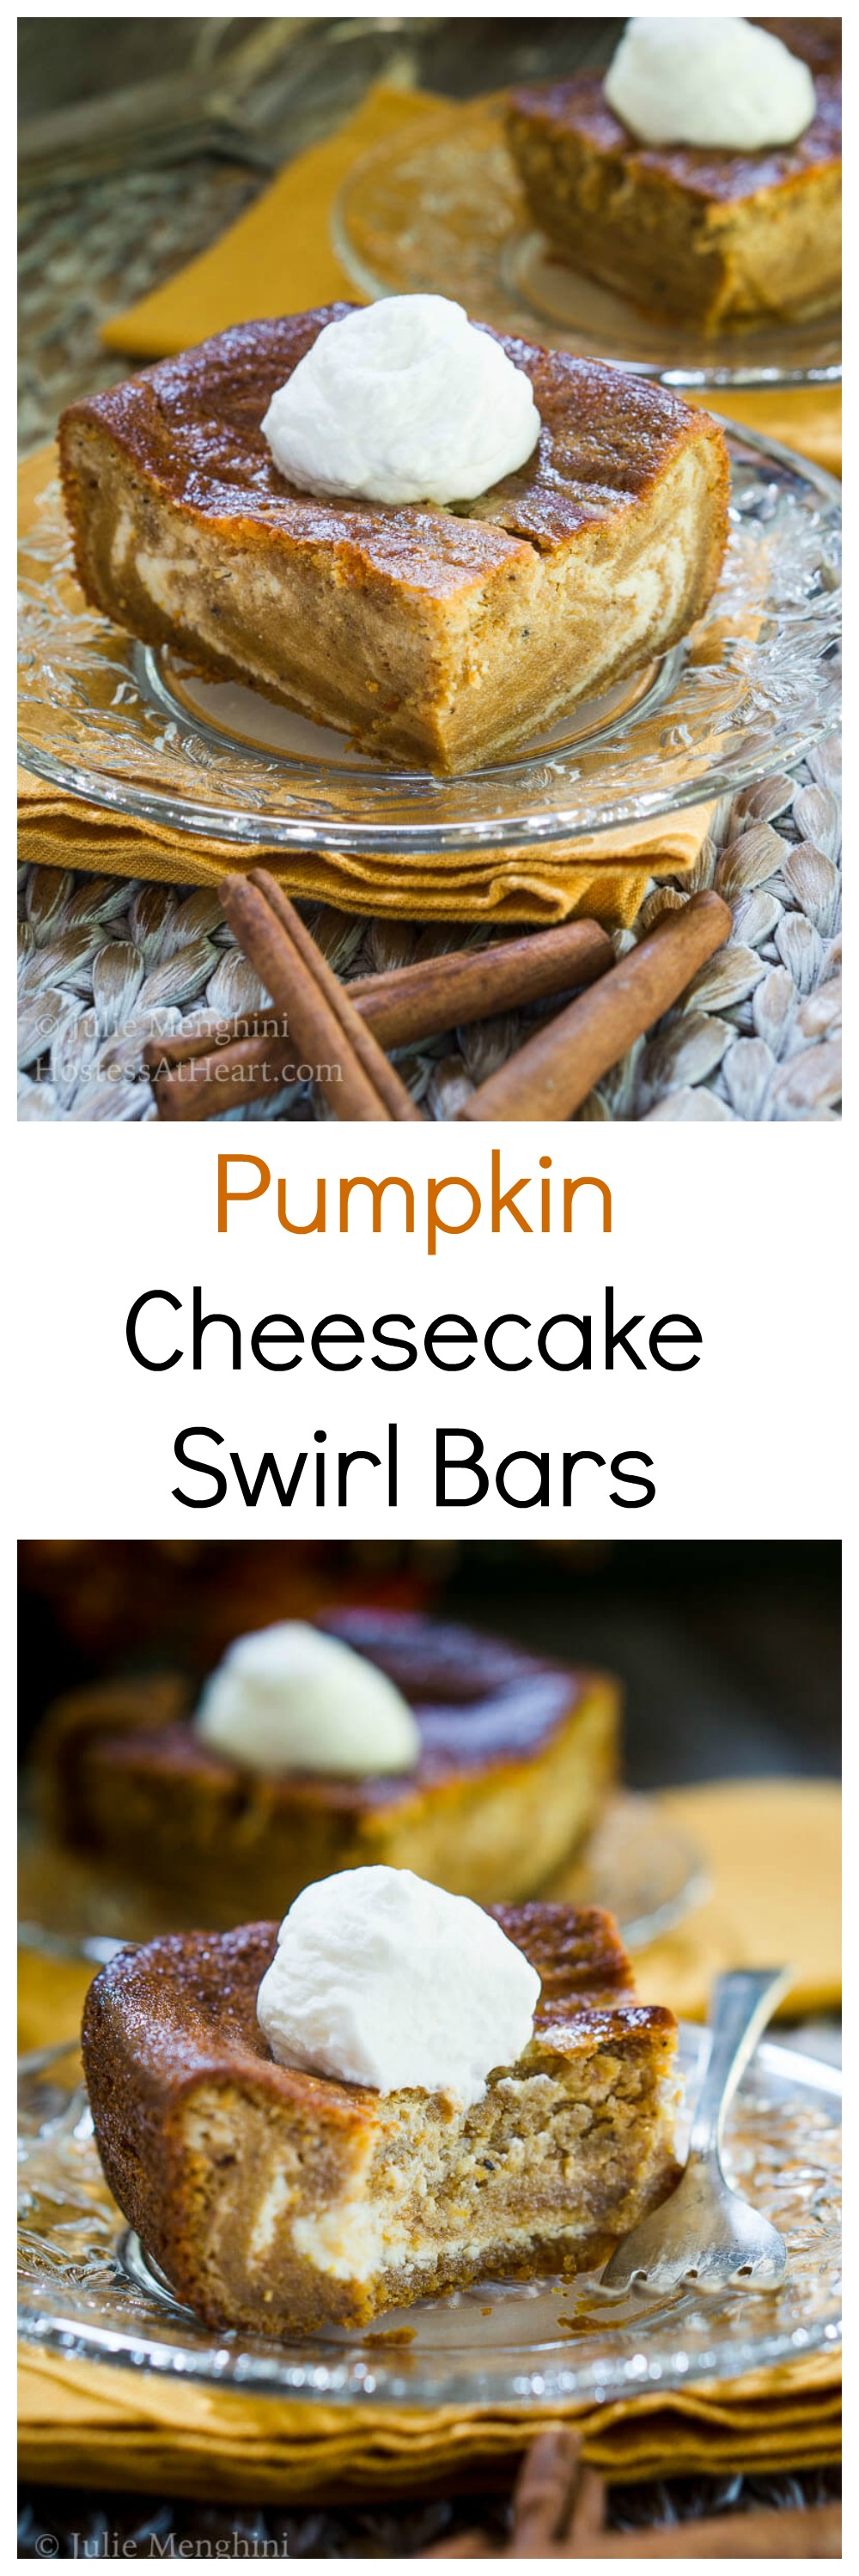 Smooth & Creamy Pumpkin Cheesecake Swirl Bars are the definition of fall and will be a delicious show-stopper at your next get-together or Holiday dinner! | HostessAtHeart.com